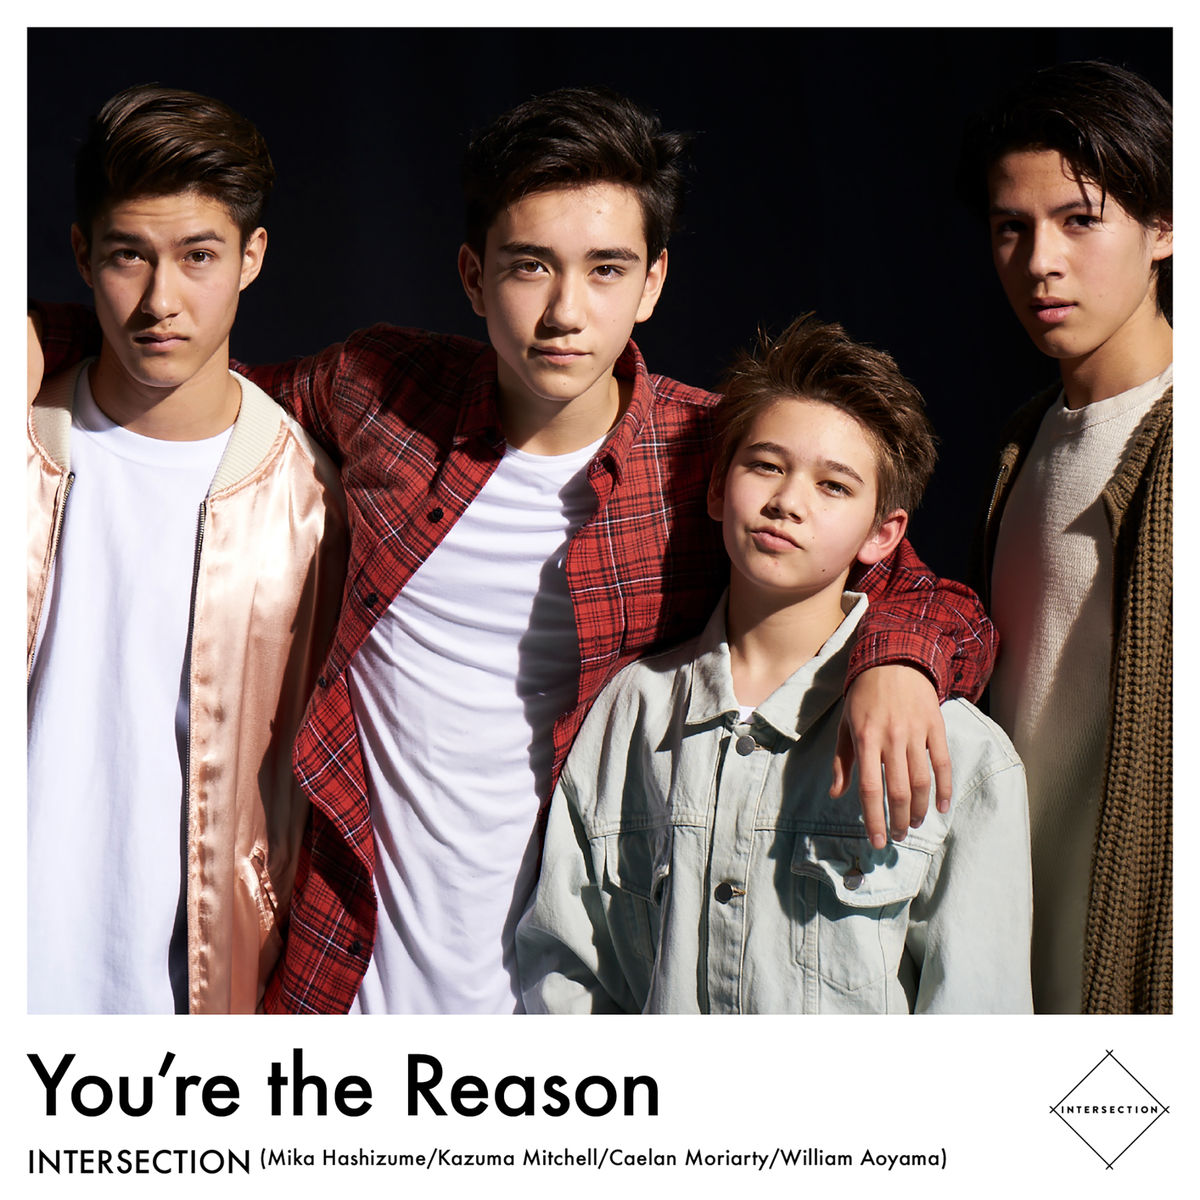 『You're the Reason』収録の『You're the Reason』ジャケット